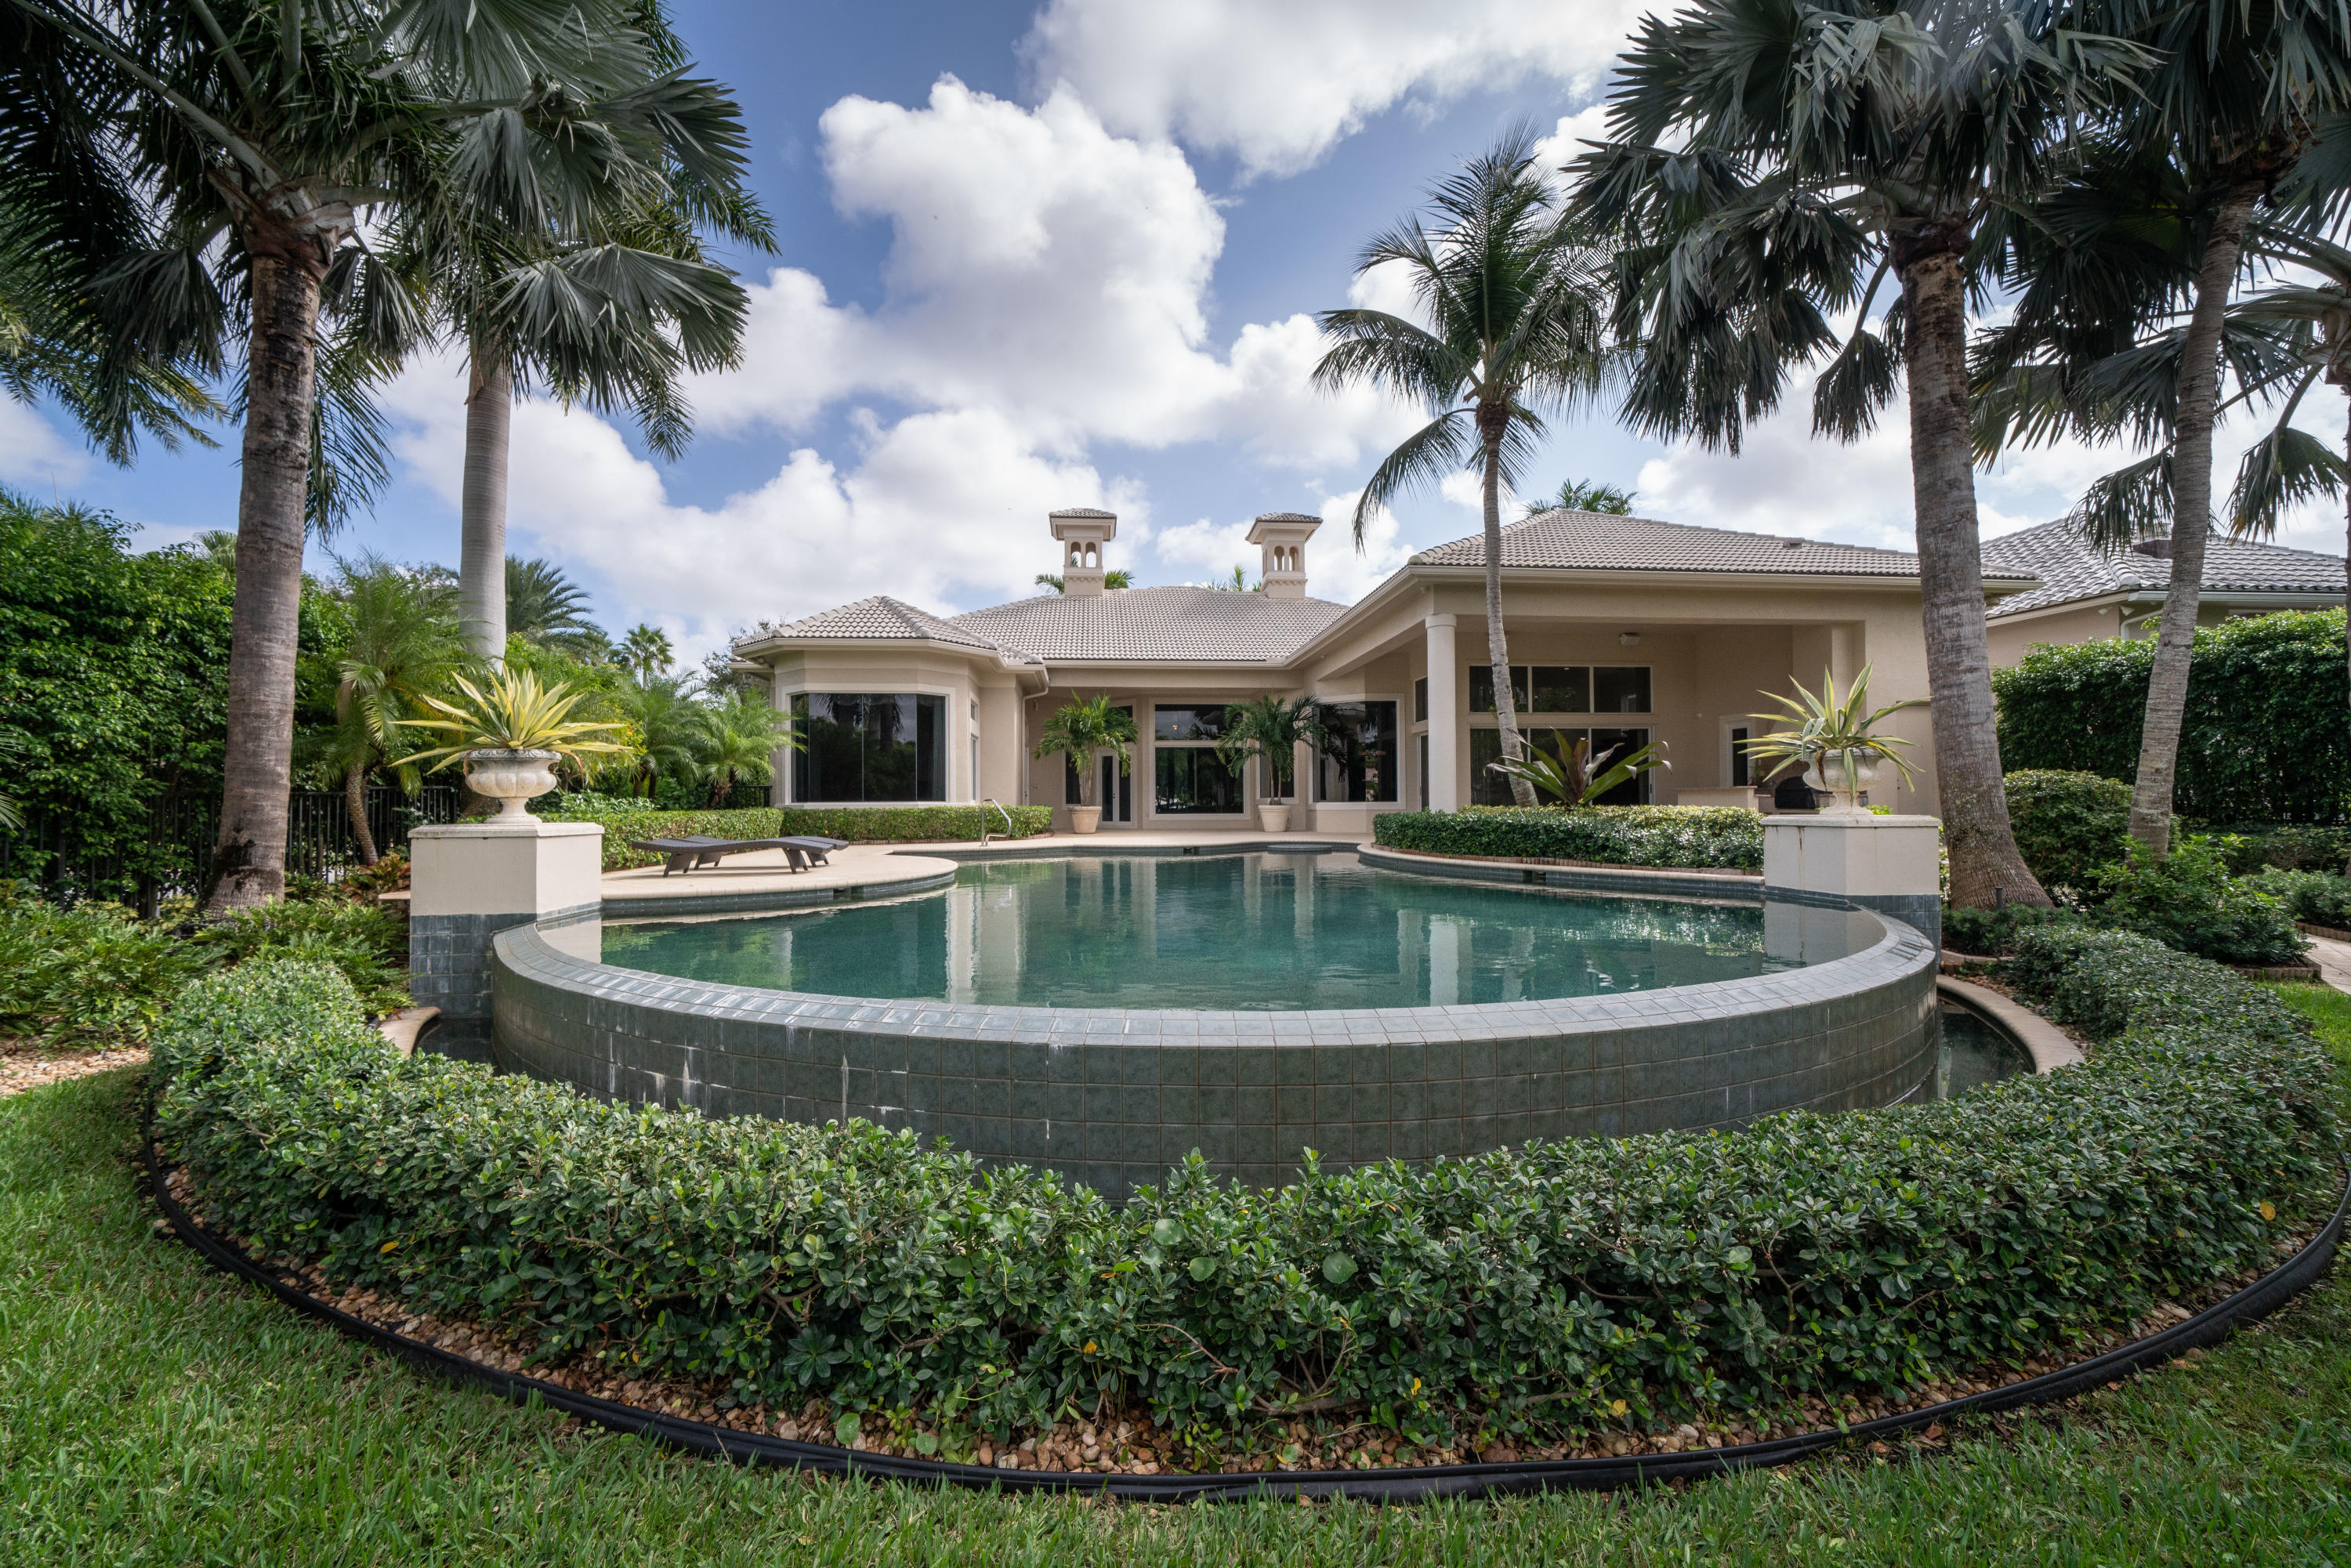 JUPITER RIVER ESTATES REVISED PLAT LOT 156 (LESS THAT PORTION LYING SLY OF FOLLOWING LN.. BEG 23.79' NE OF SE COR, NW 10